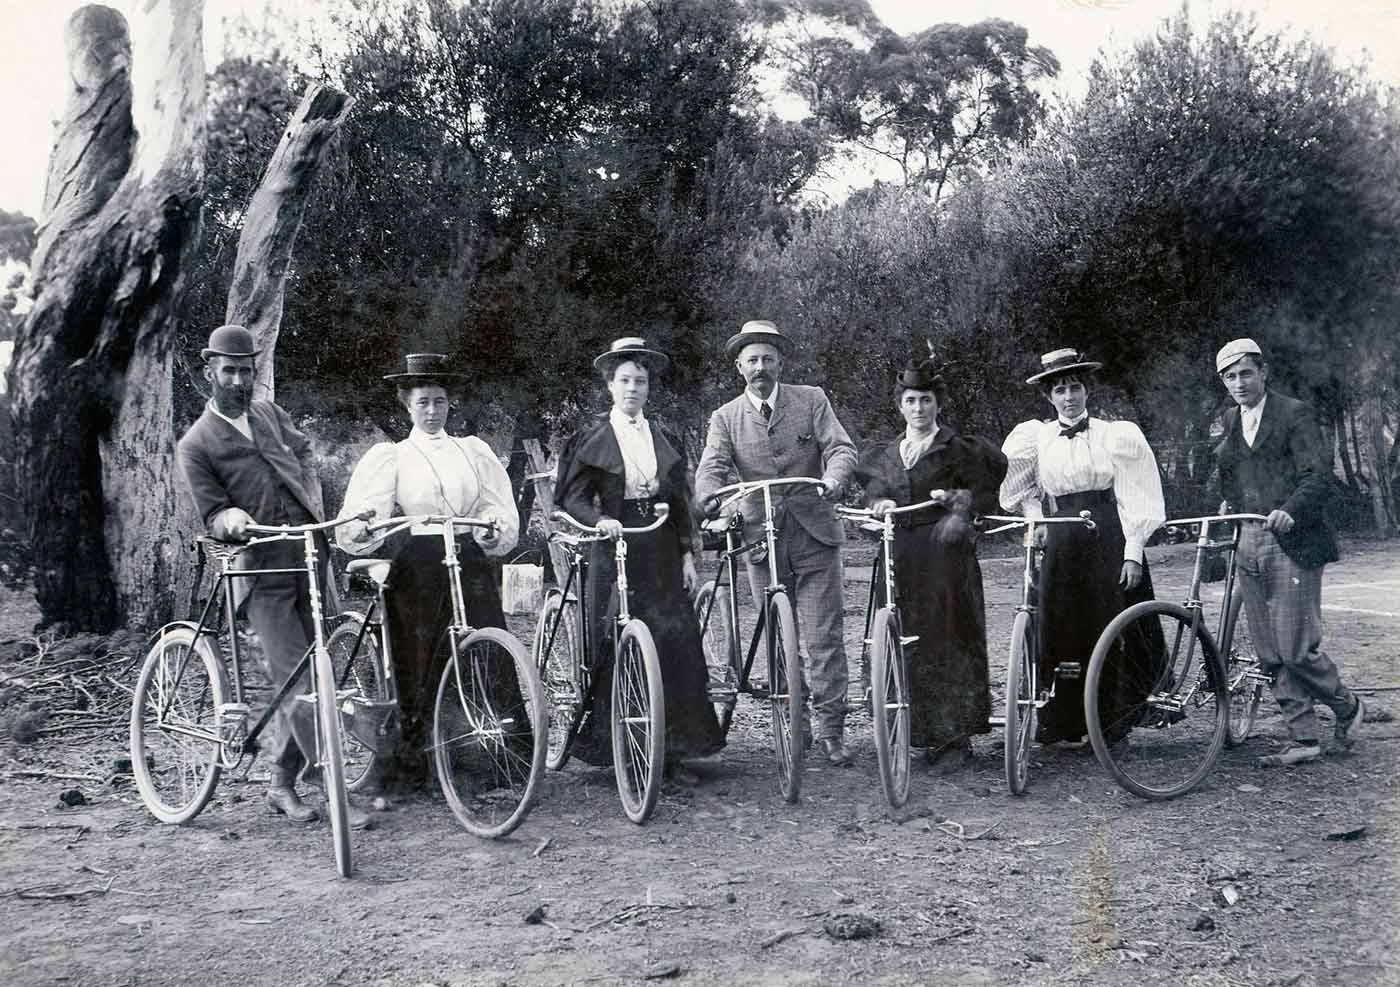 A black and white photo of a group of men and women standing with their bicycles. - click to view larger image